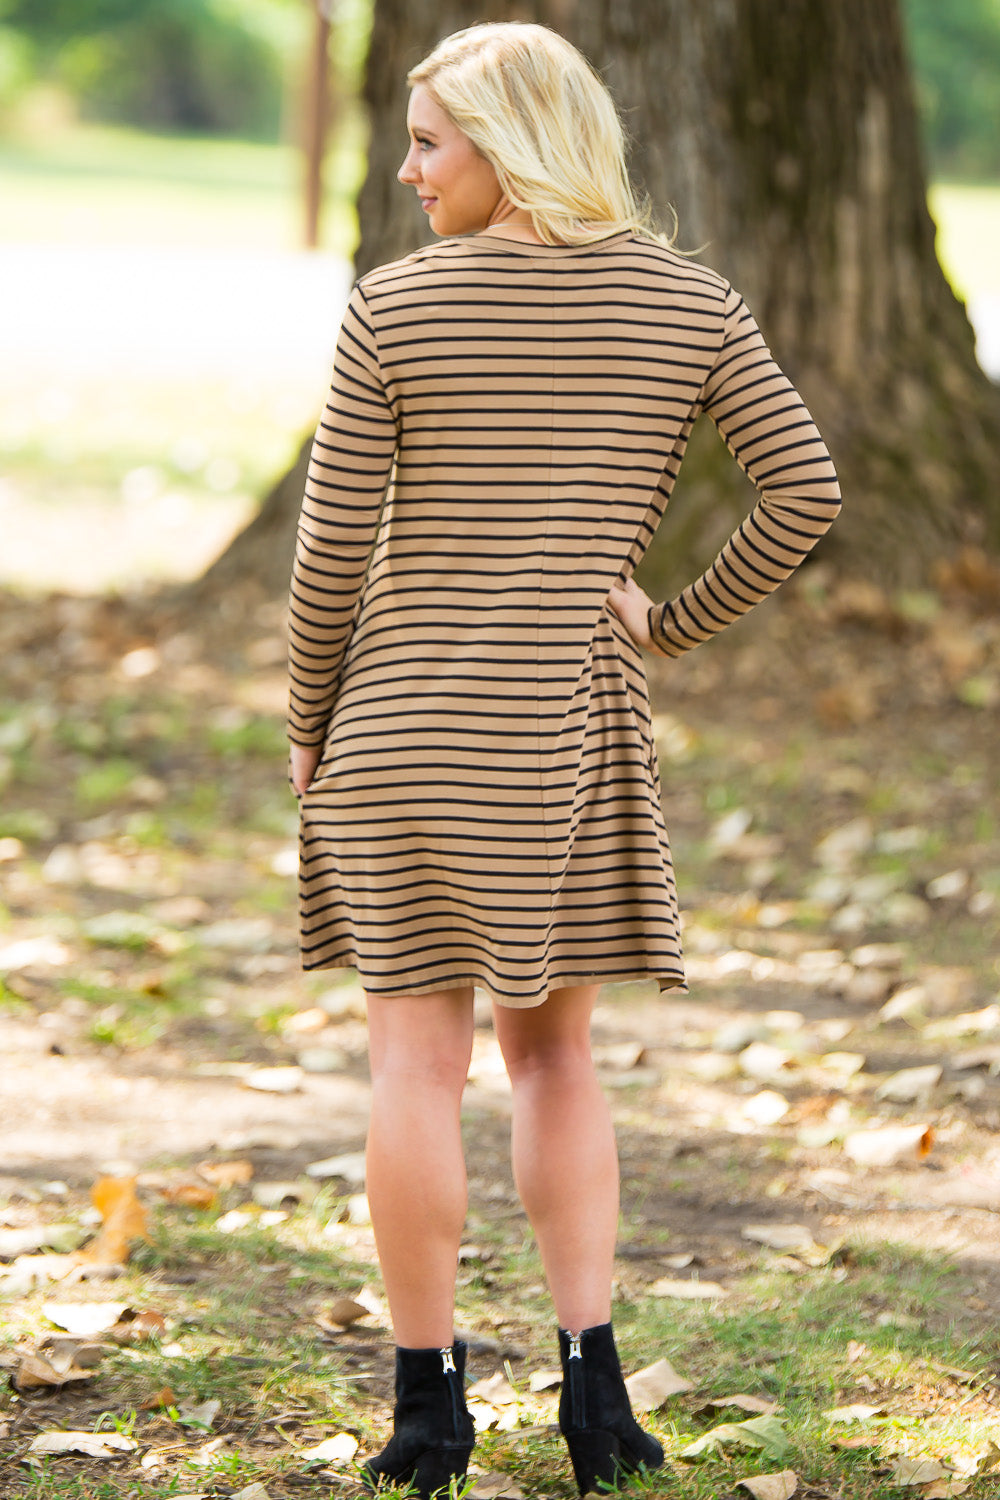 Piko Long Sleeve Tiny Stripe Swing Dress - Camel/Black - Piko Clothing